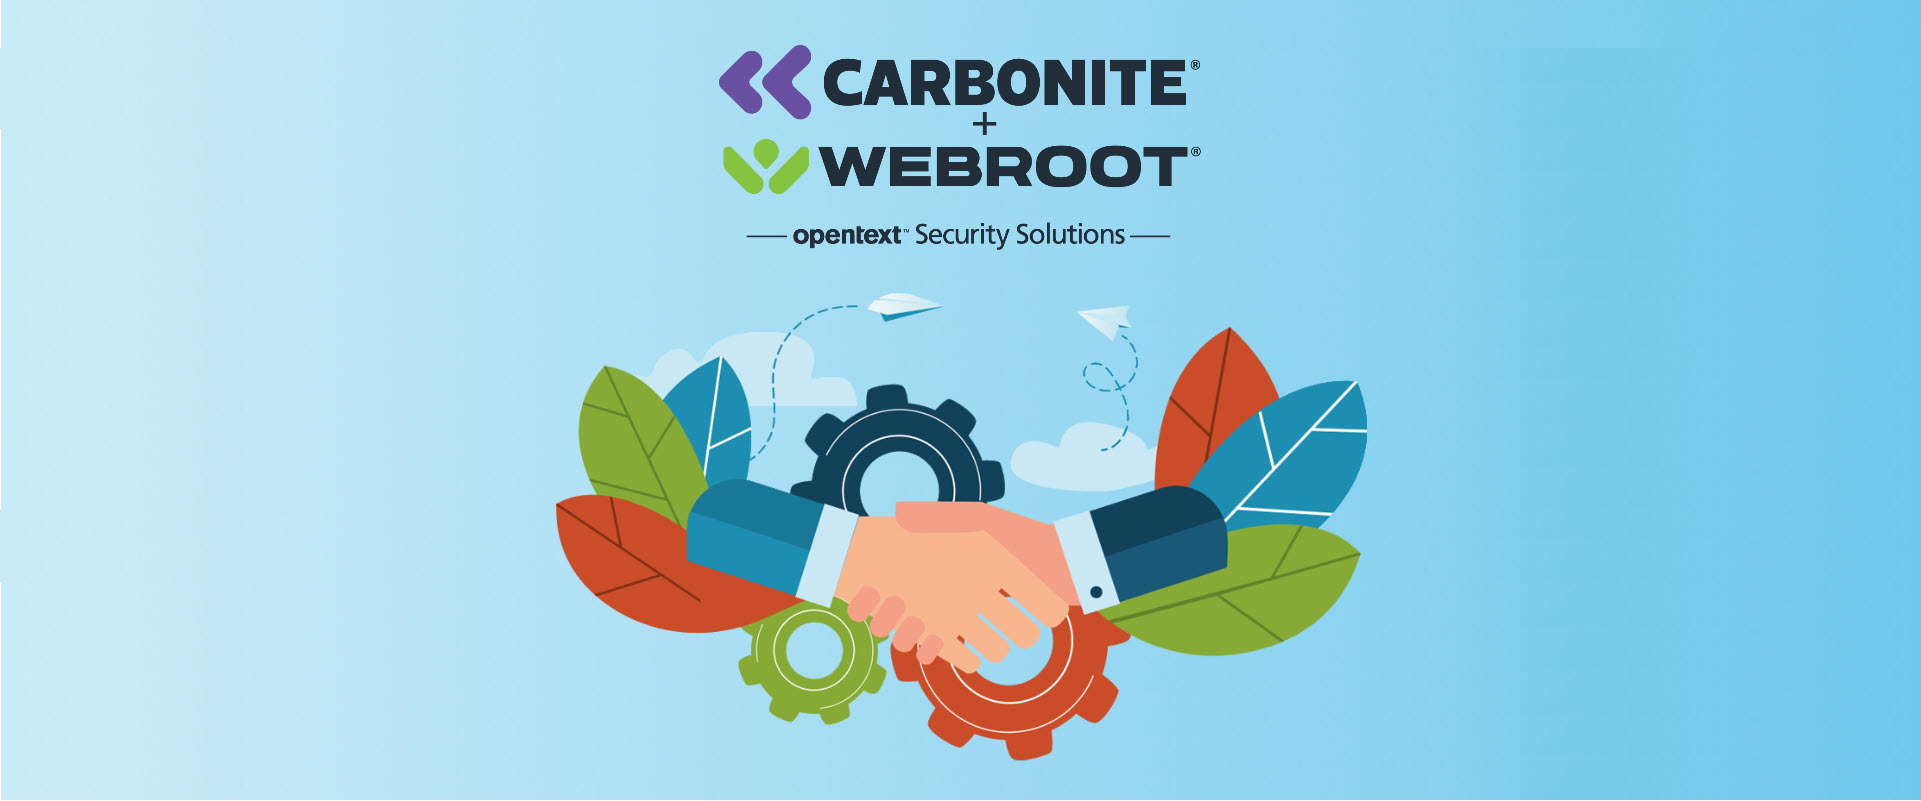 Partner With Carbonite